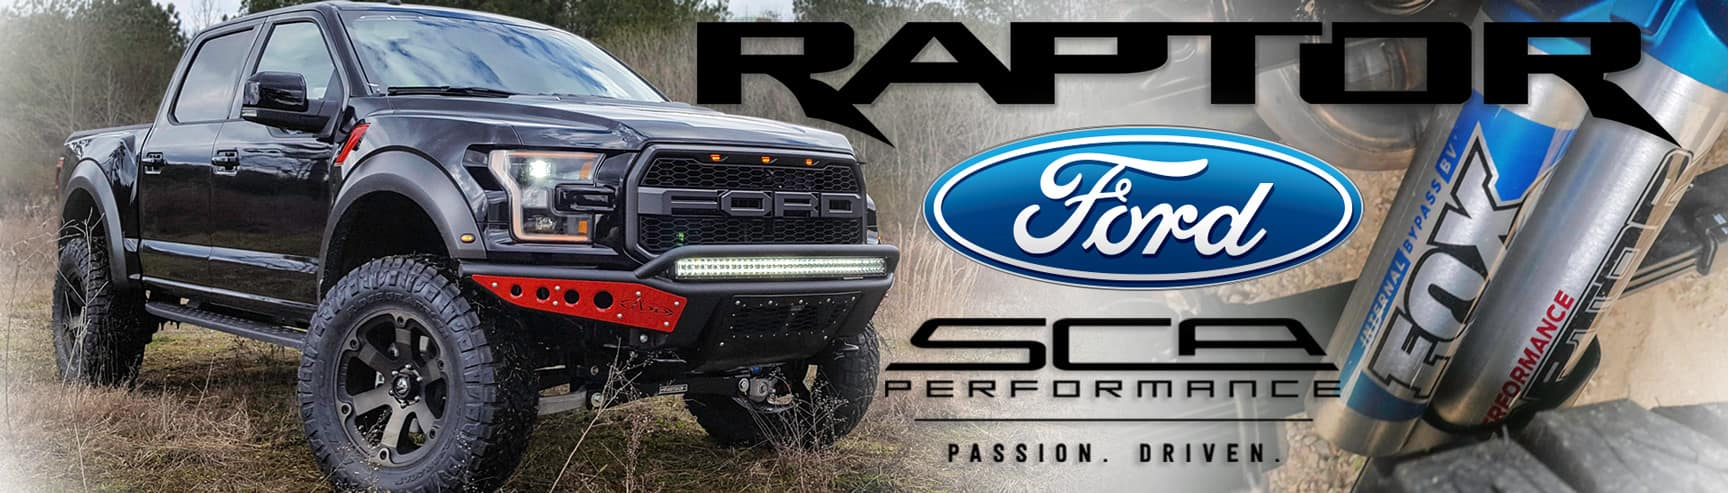 Custom Ford Raptor for Sale